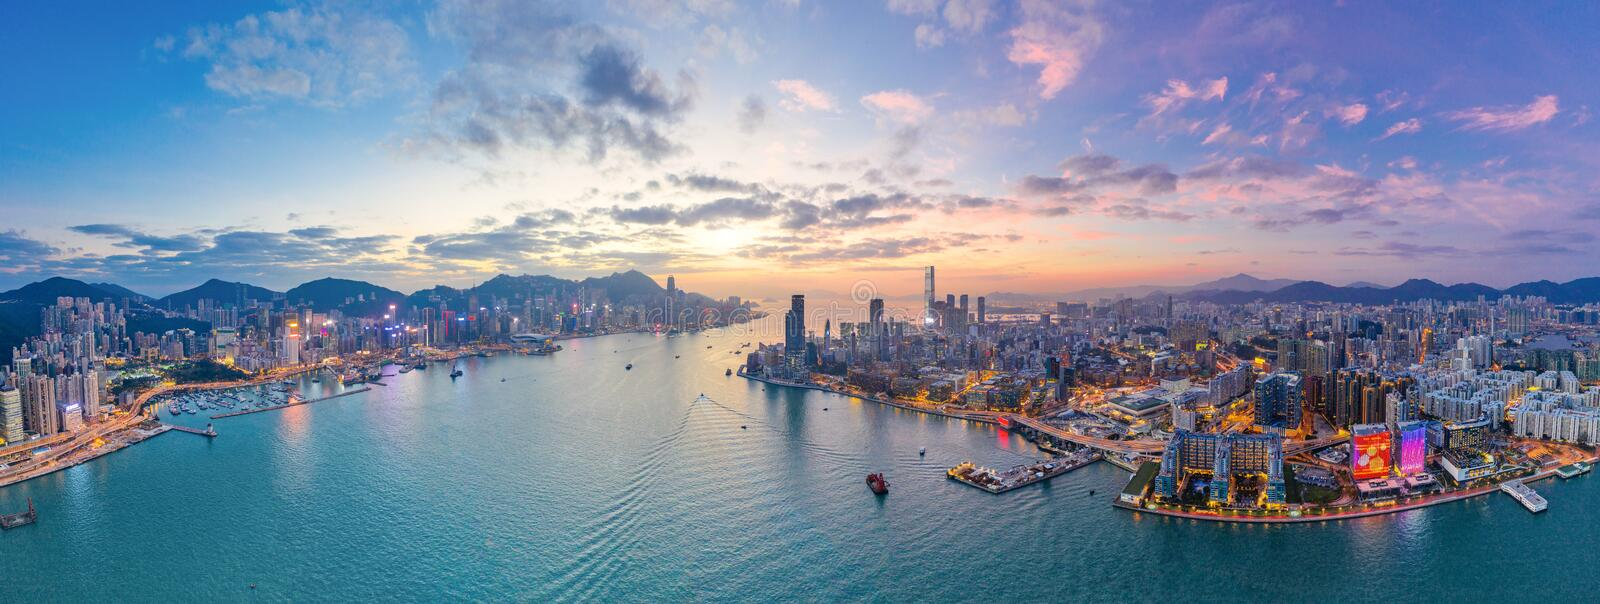 Sunset of Victoria Harbour, Hong Kong royalty free stock photo